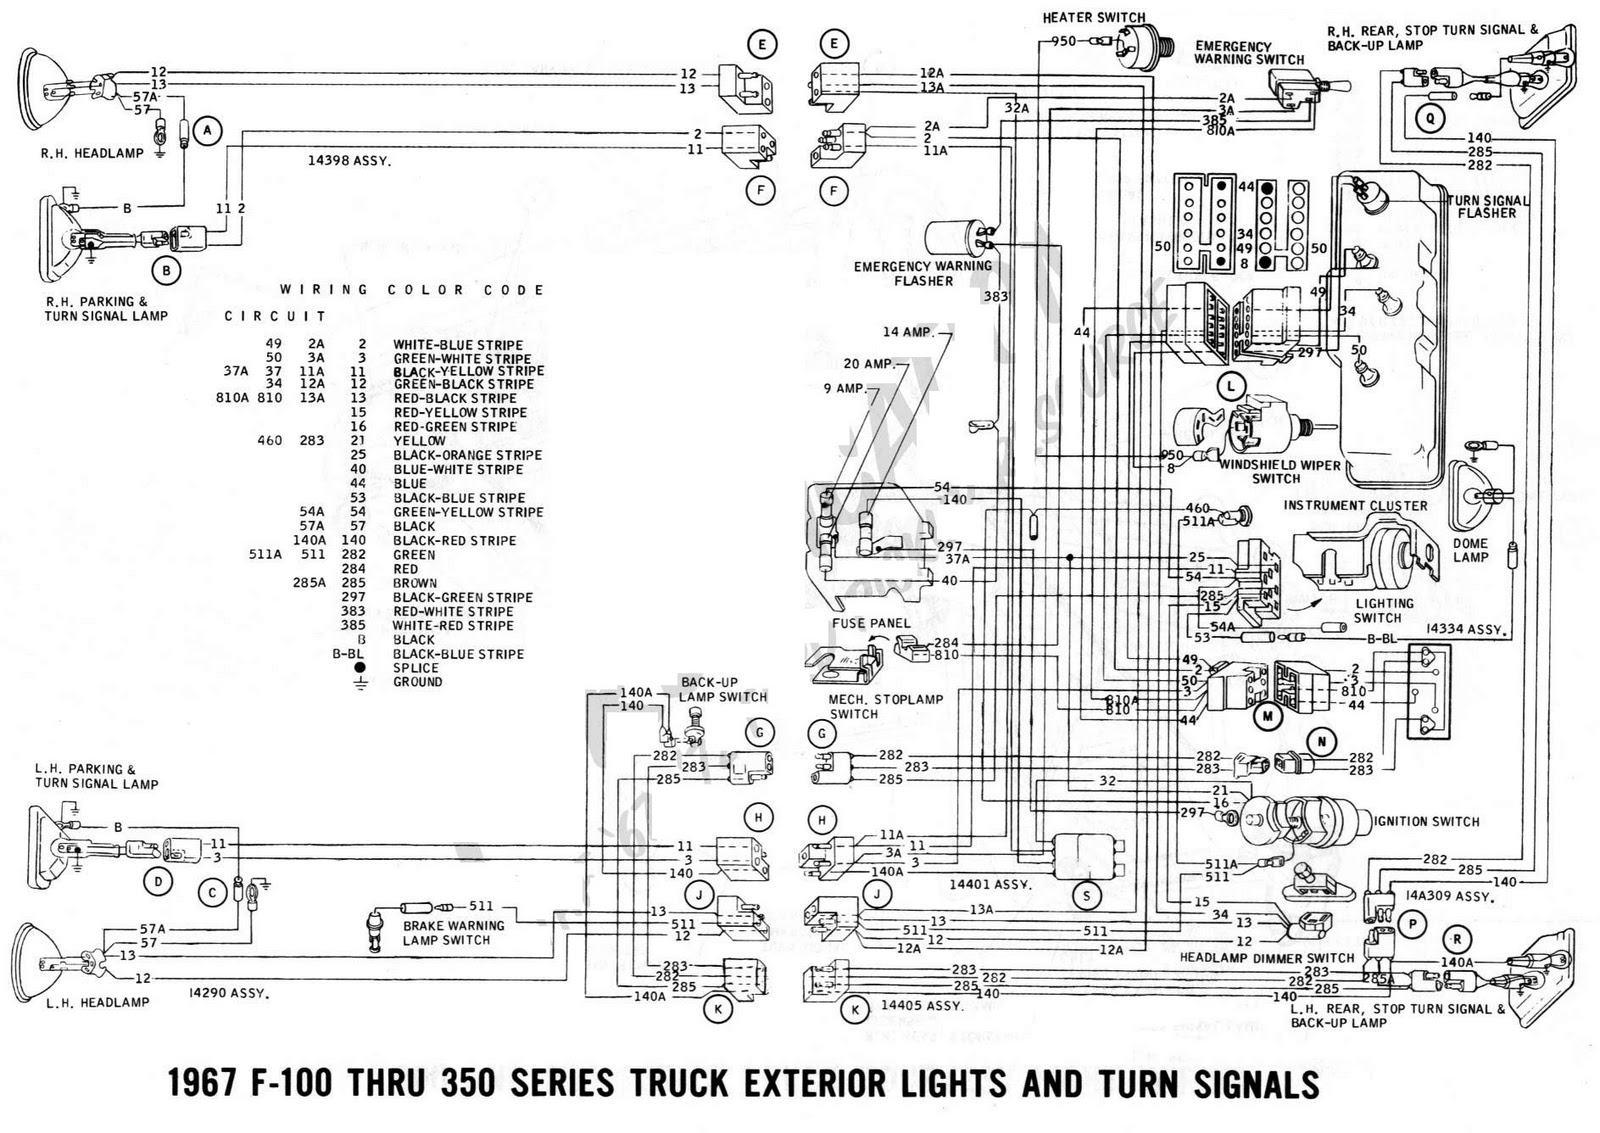 1972 Chevy Truck Wiper Motor Wiring Diagram on 1967 ford galaxie wiring harness